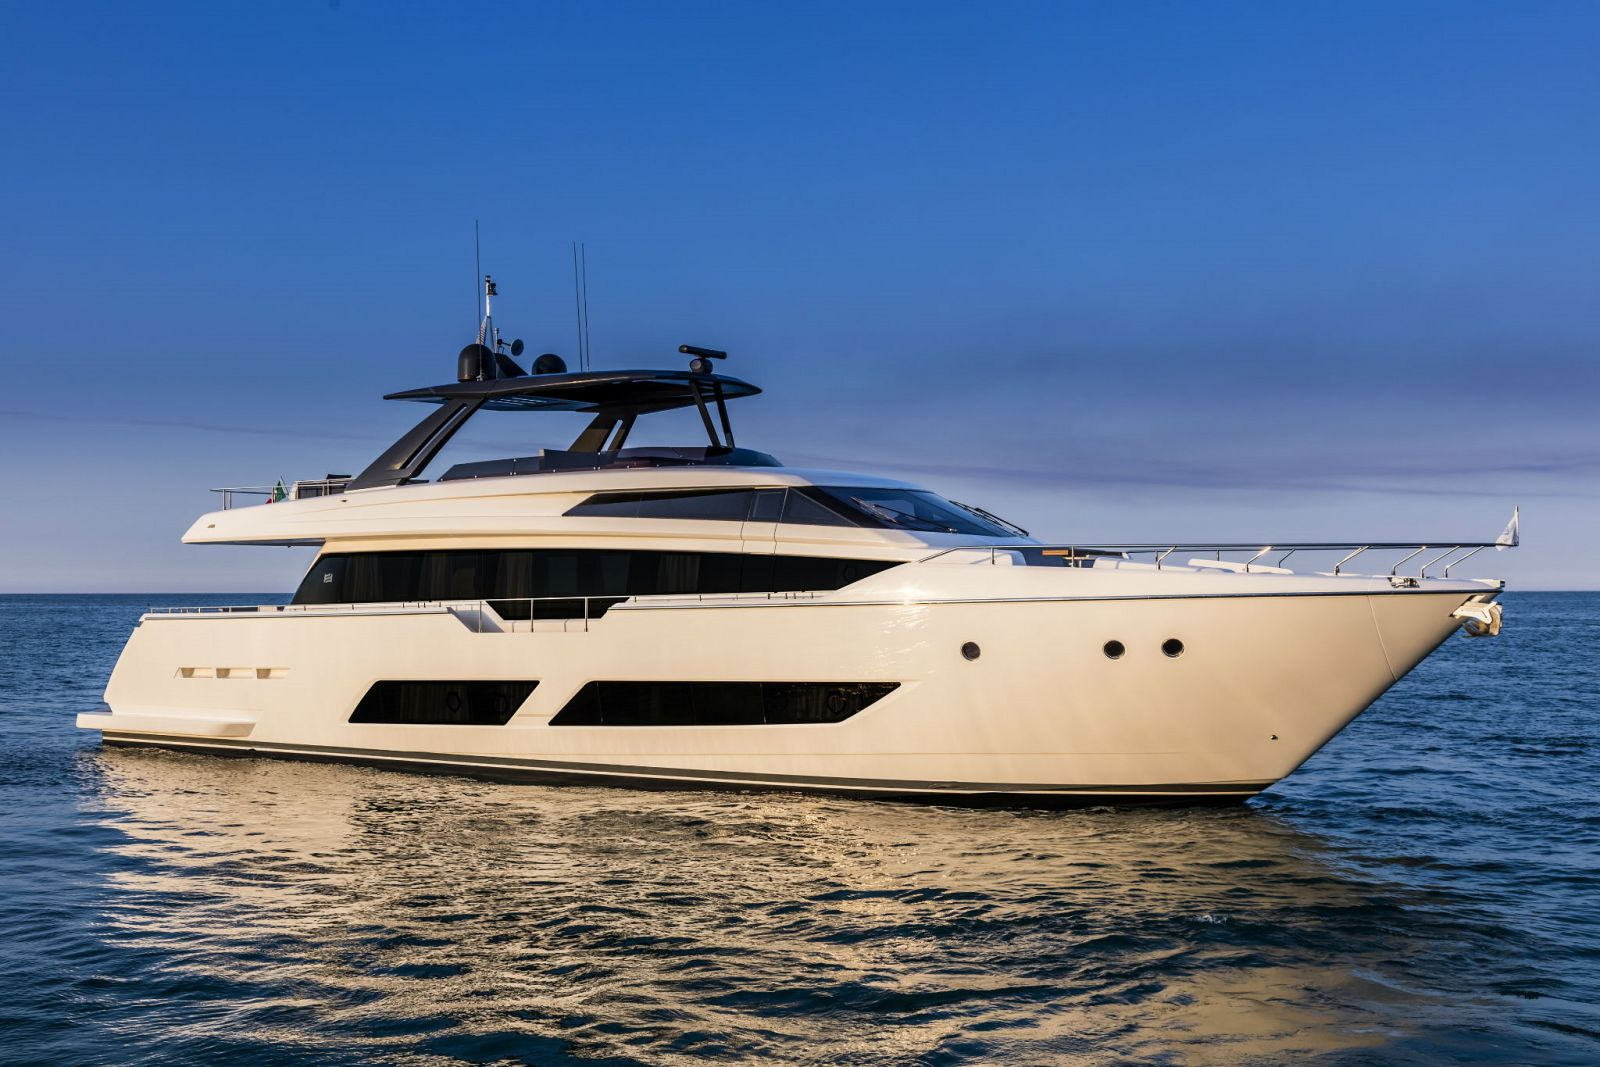 Ferretti Yachts 850 Exterior - New Luxury Yacht for Sale >